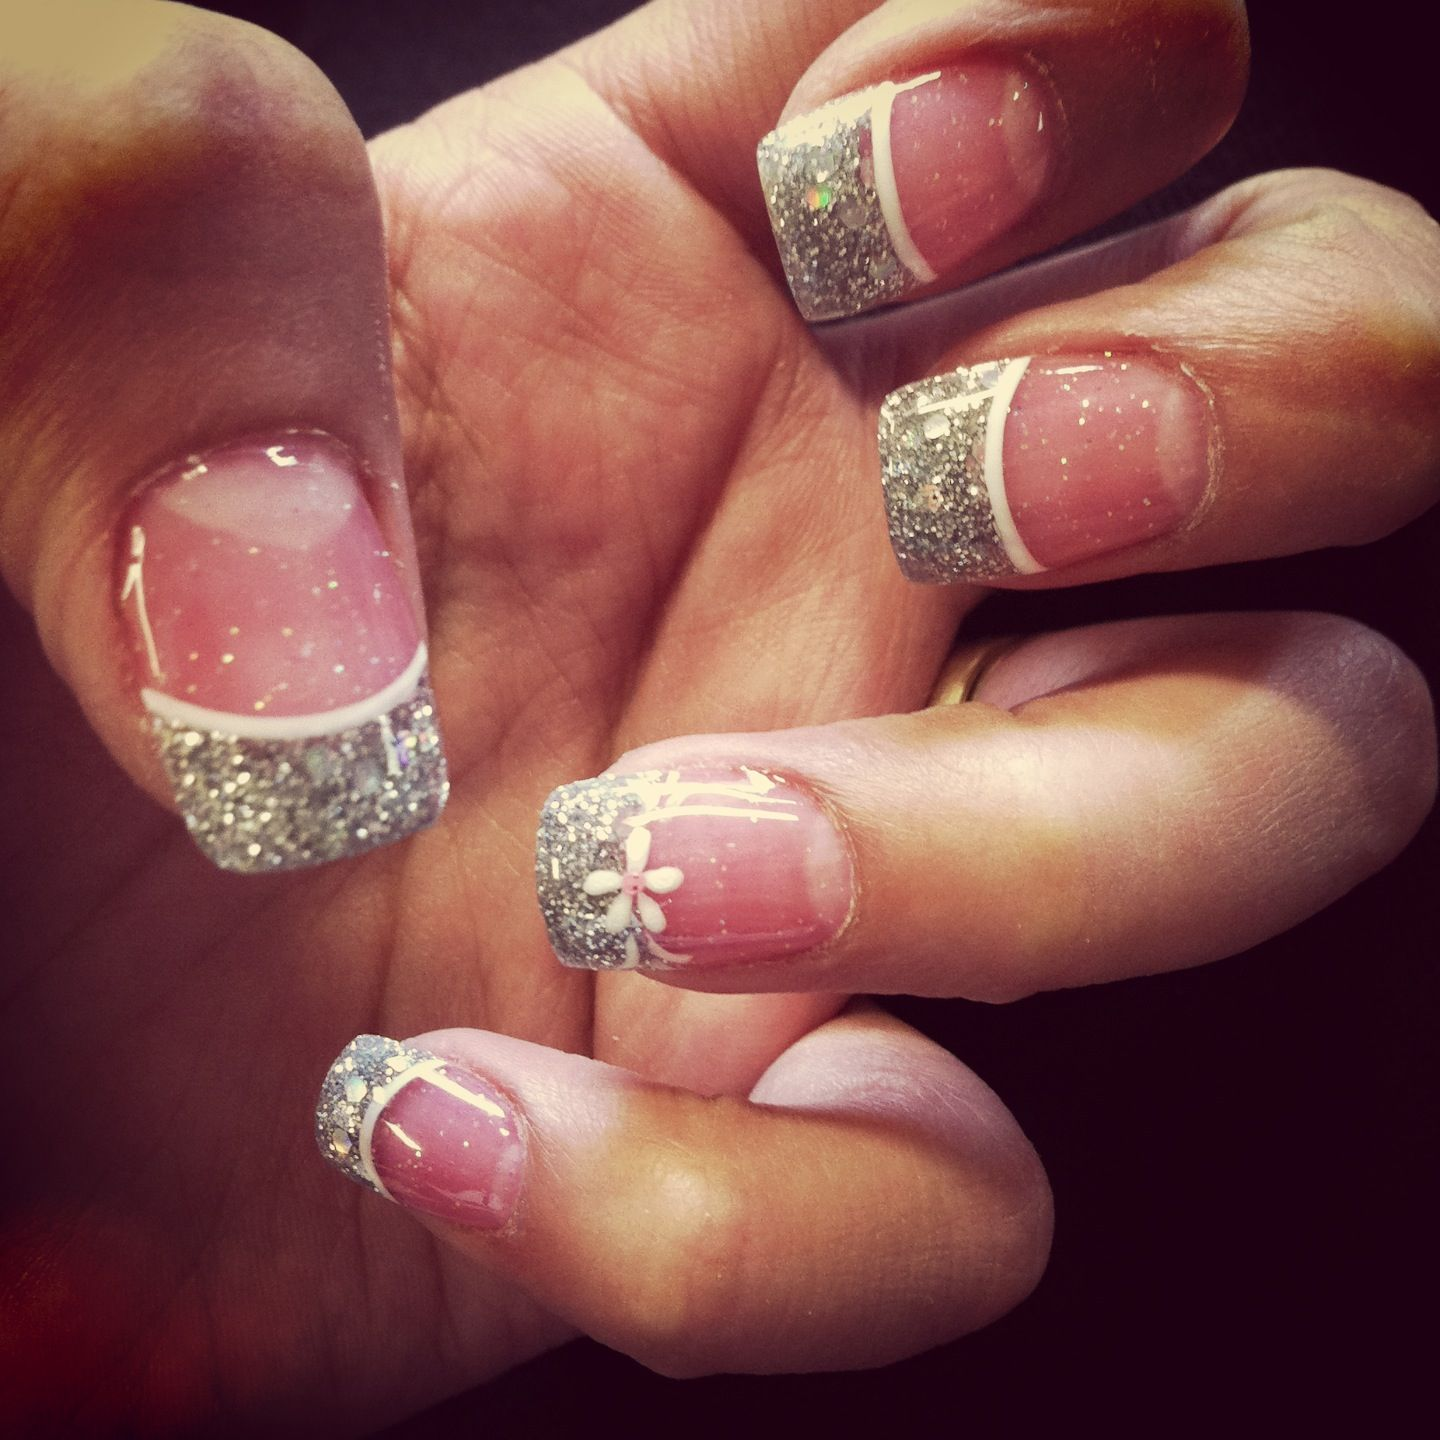 Pretty Nails Pink And White Silver Glitter Tips With White Line White Glitter Nails Pretty Nails Glitter Tip Nails